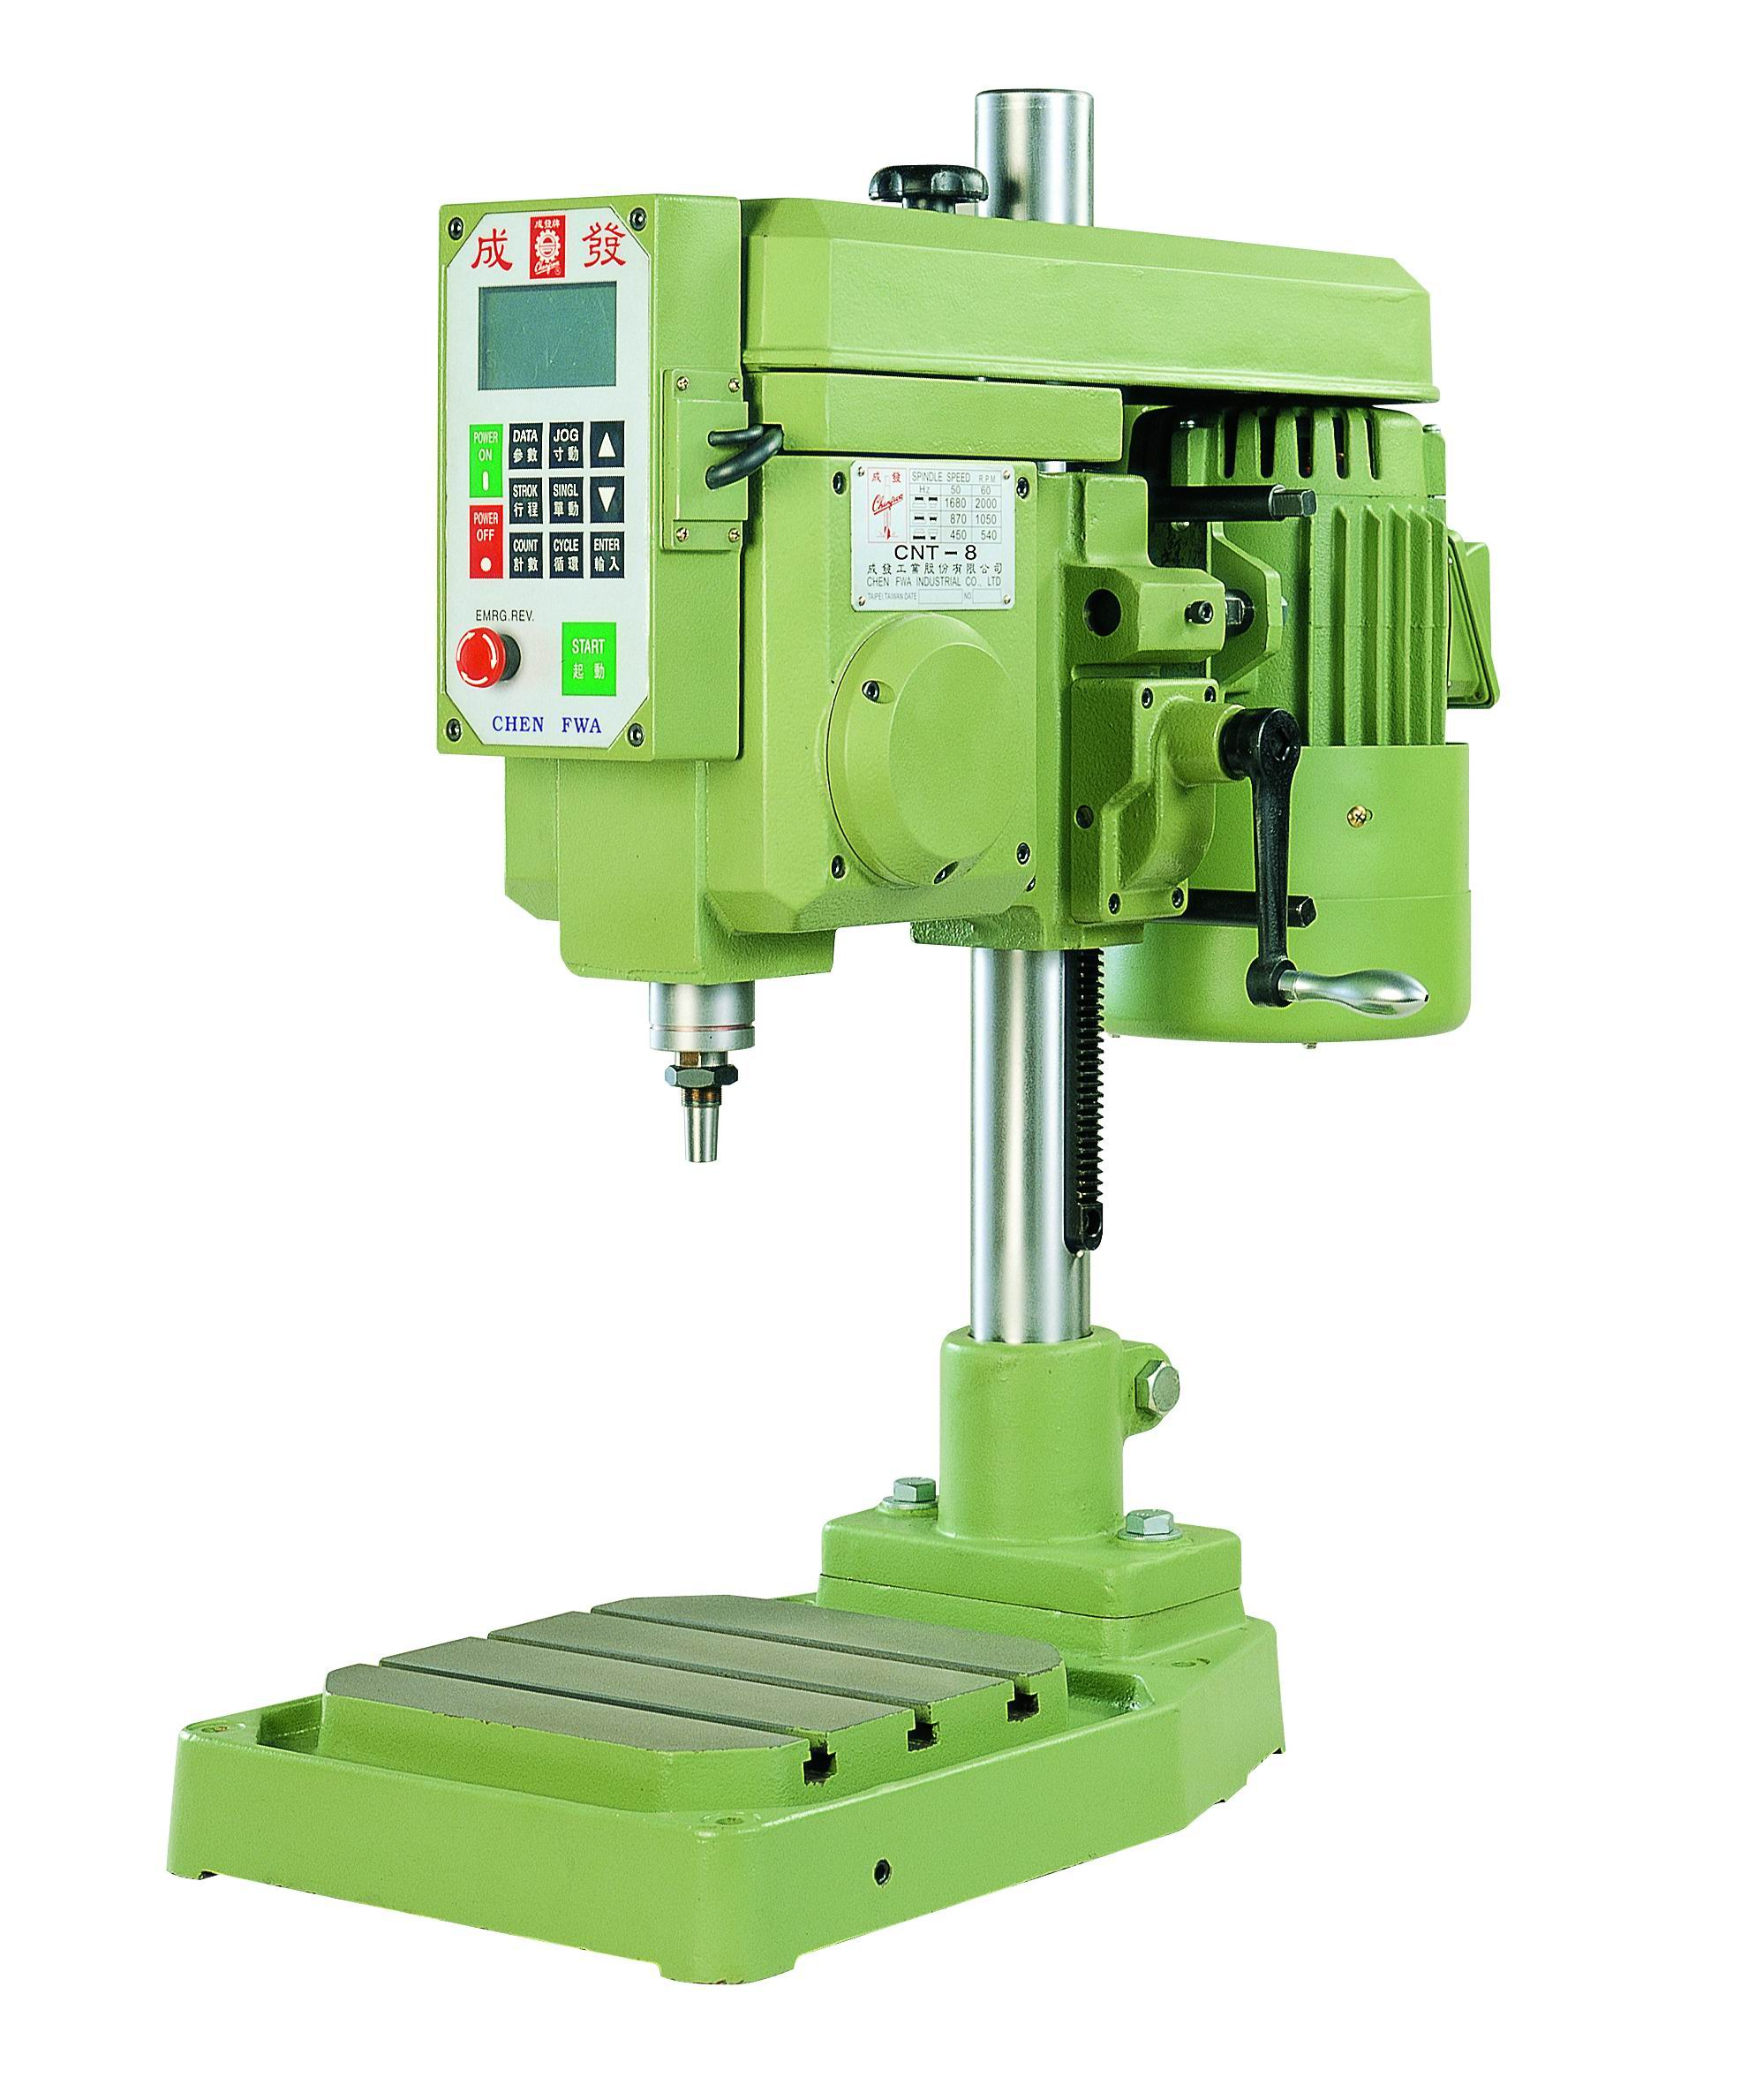 Numerical Control High Speed Auto Tapping Machine-CNT-8